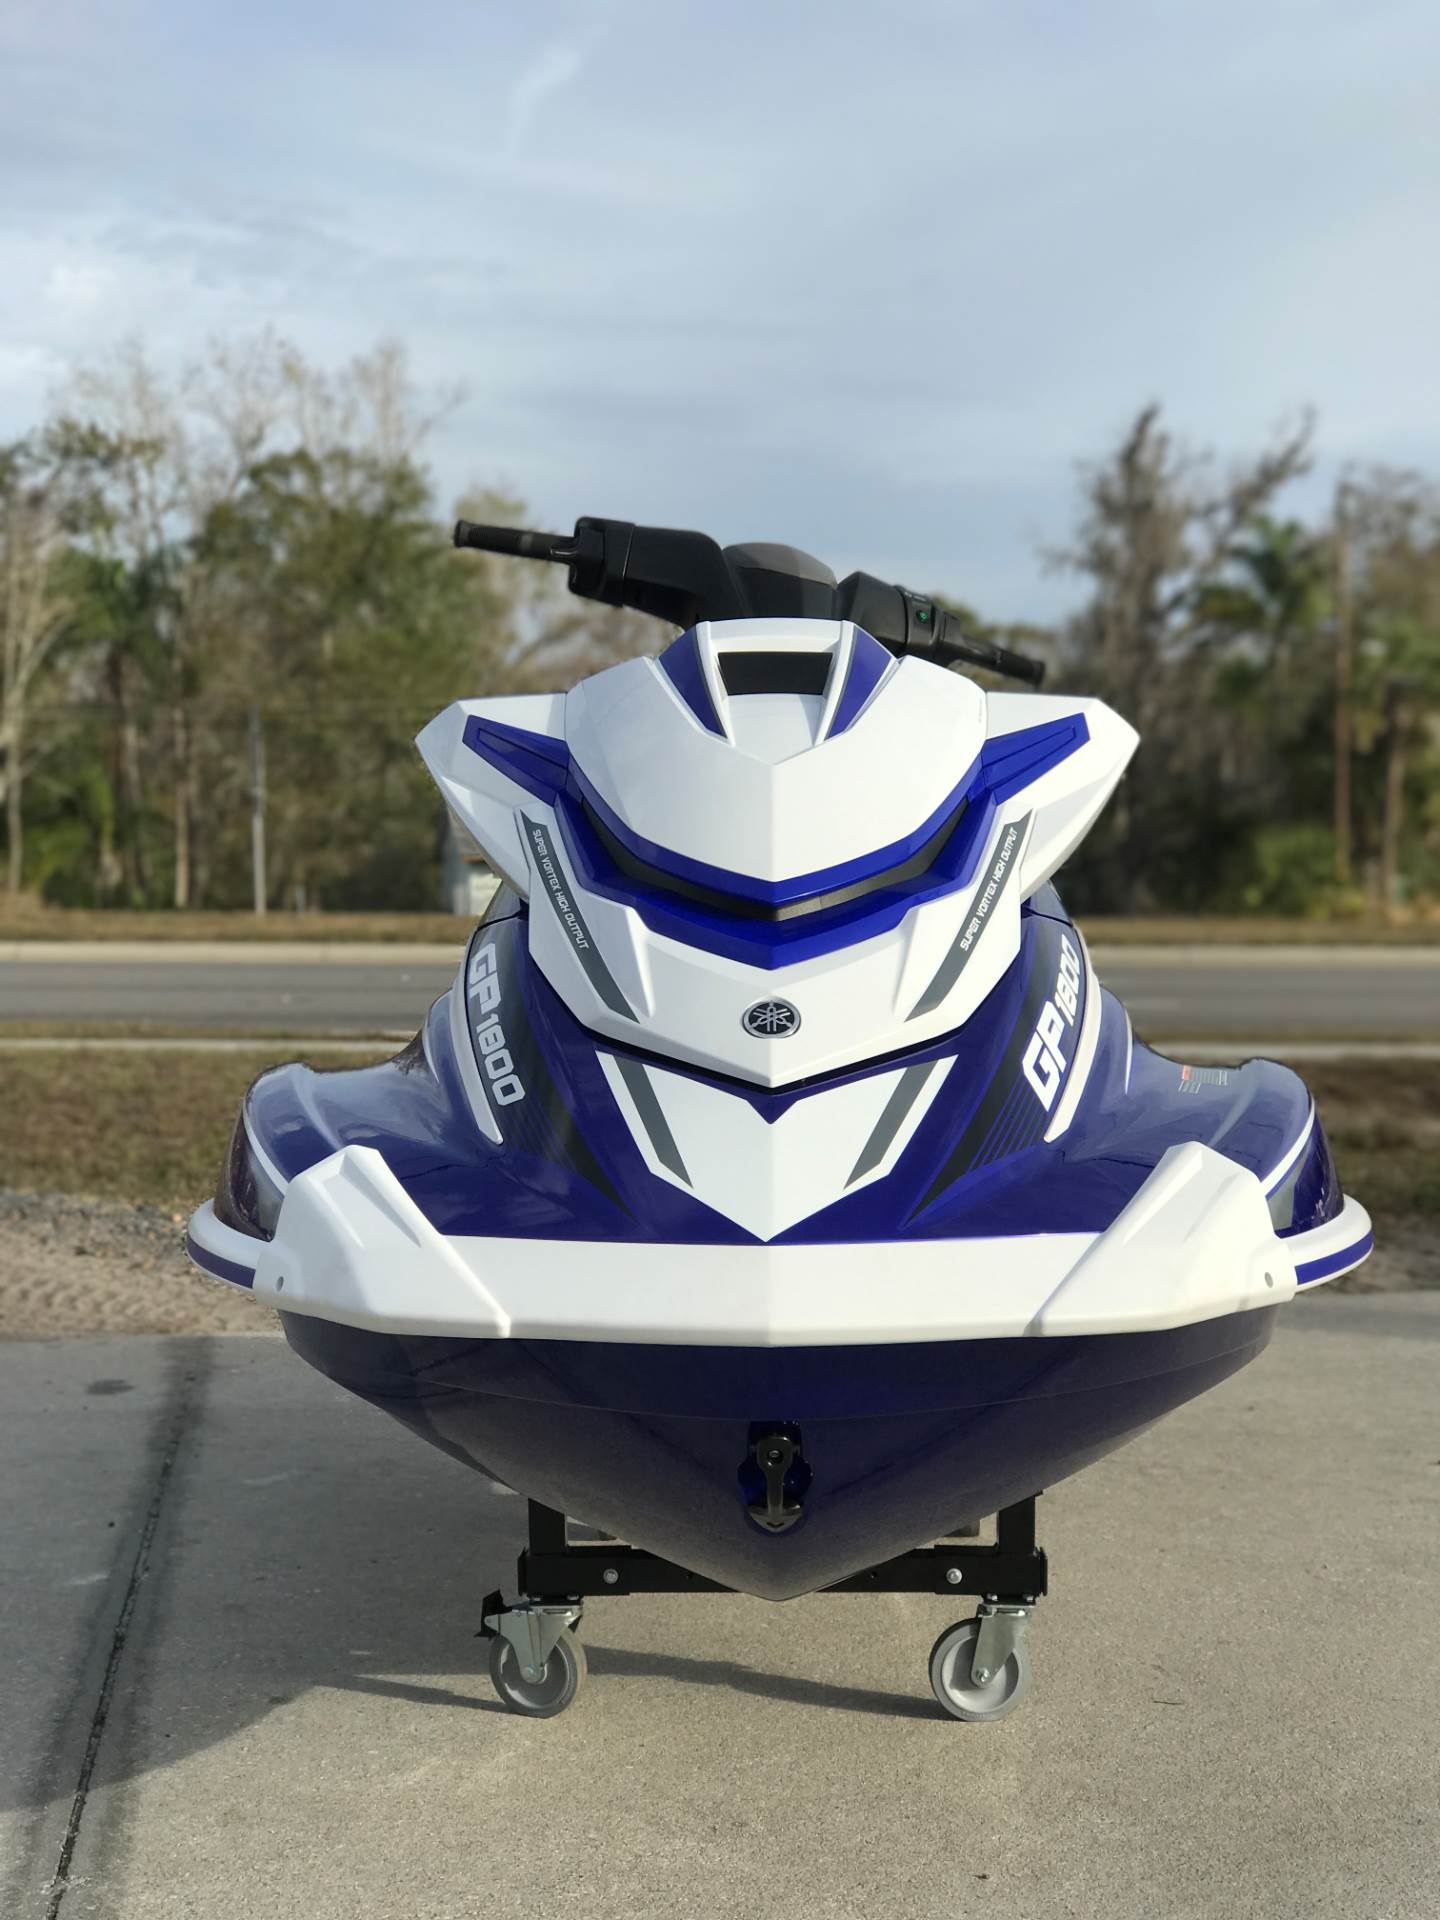 2018 Yamaha GP1800 in Orlando, Florida - Photo 8